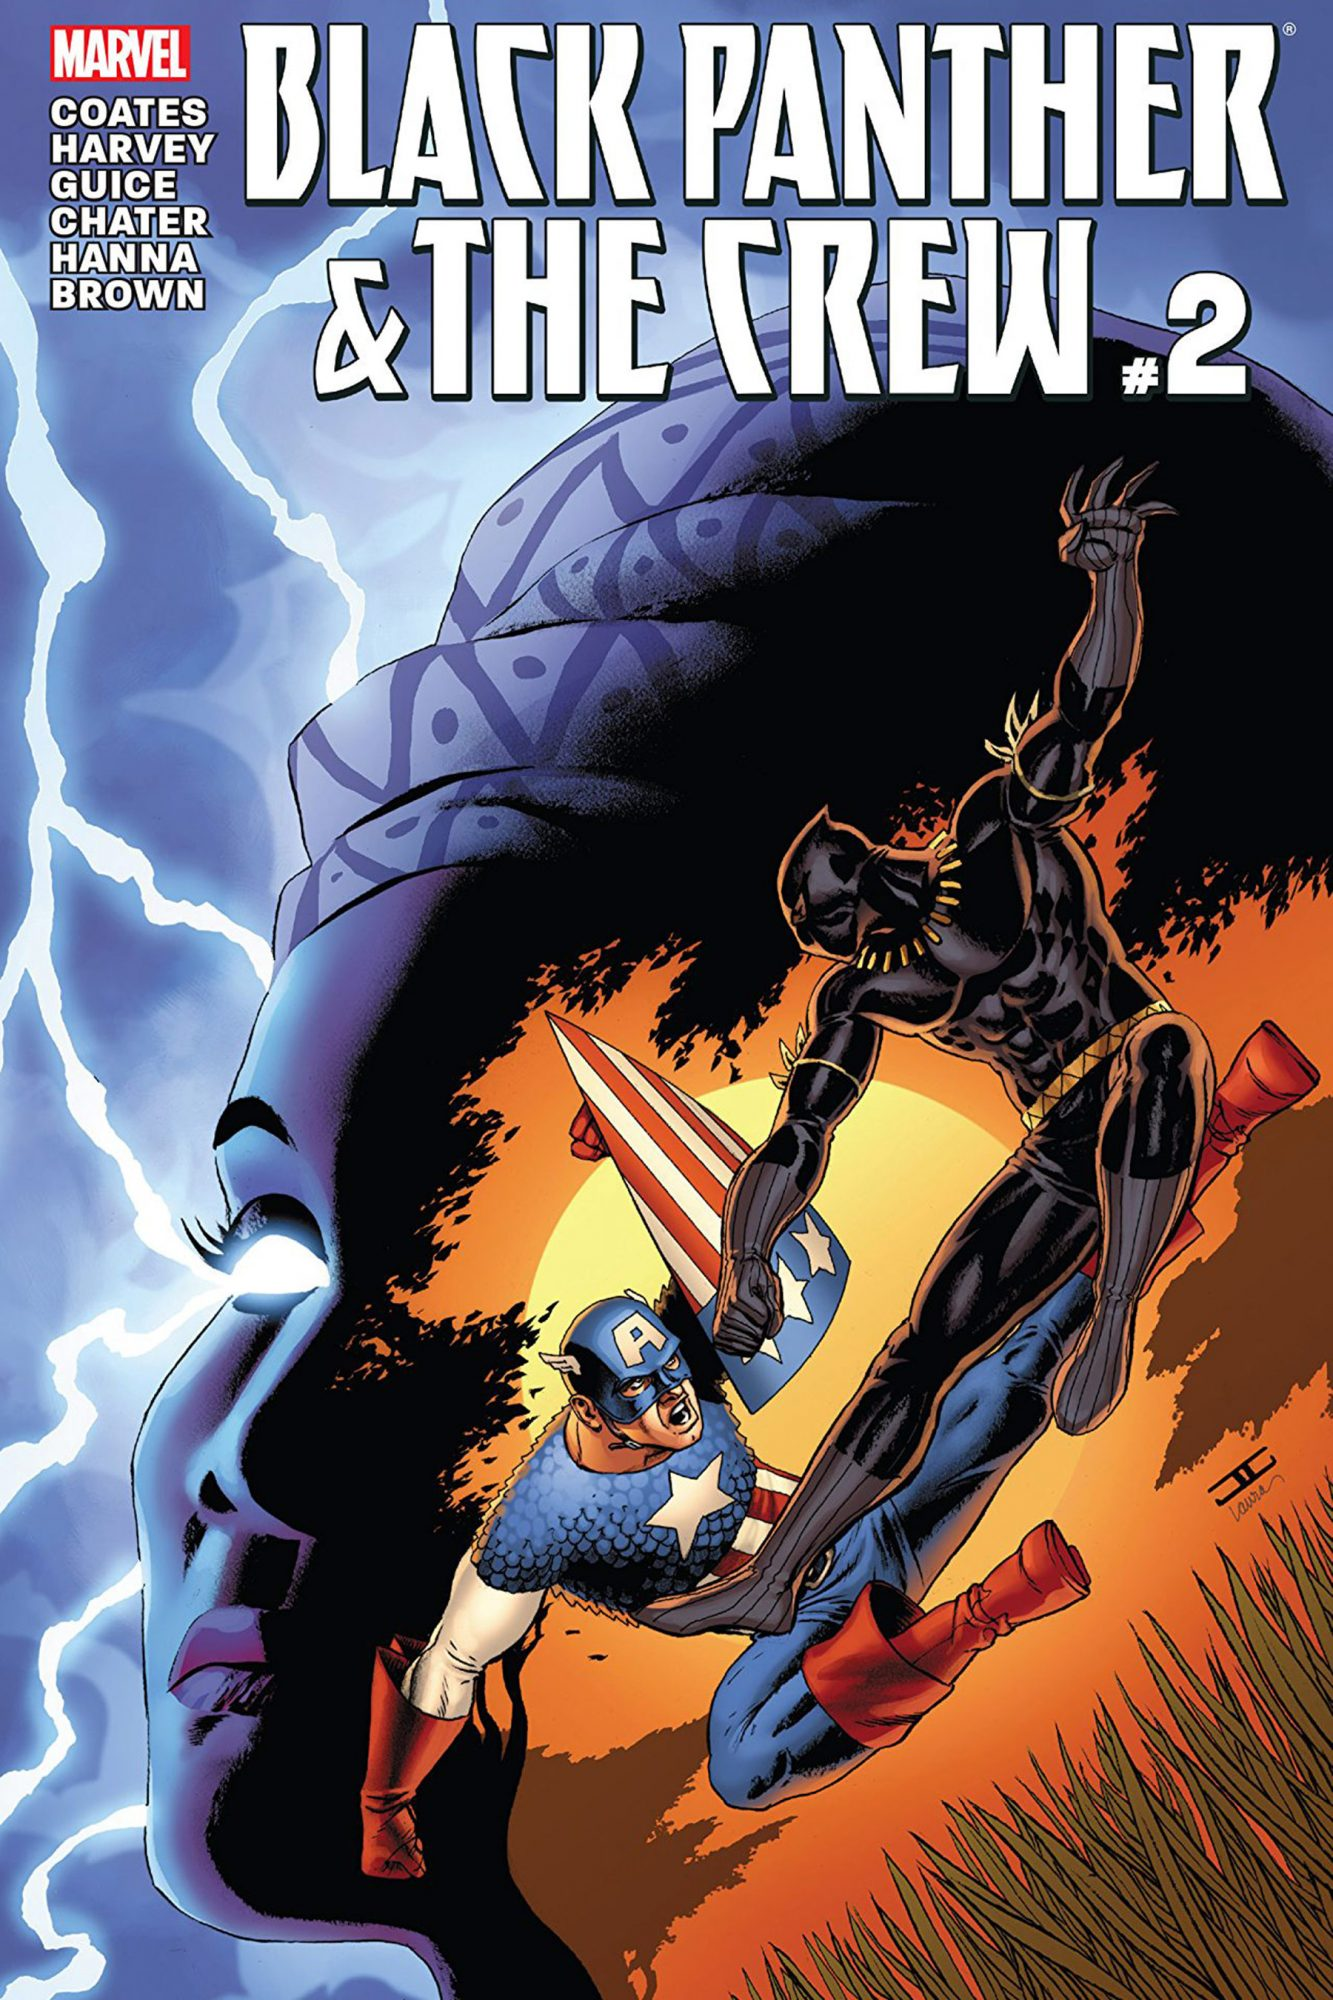 Black Panther and the Crew #2